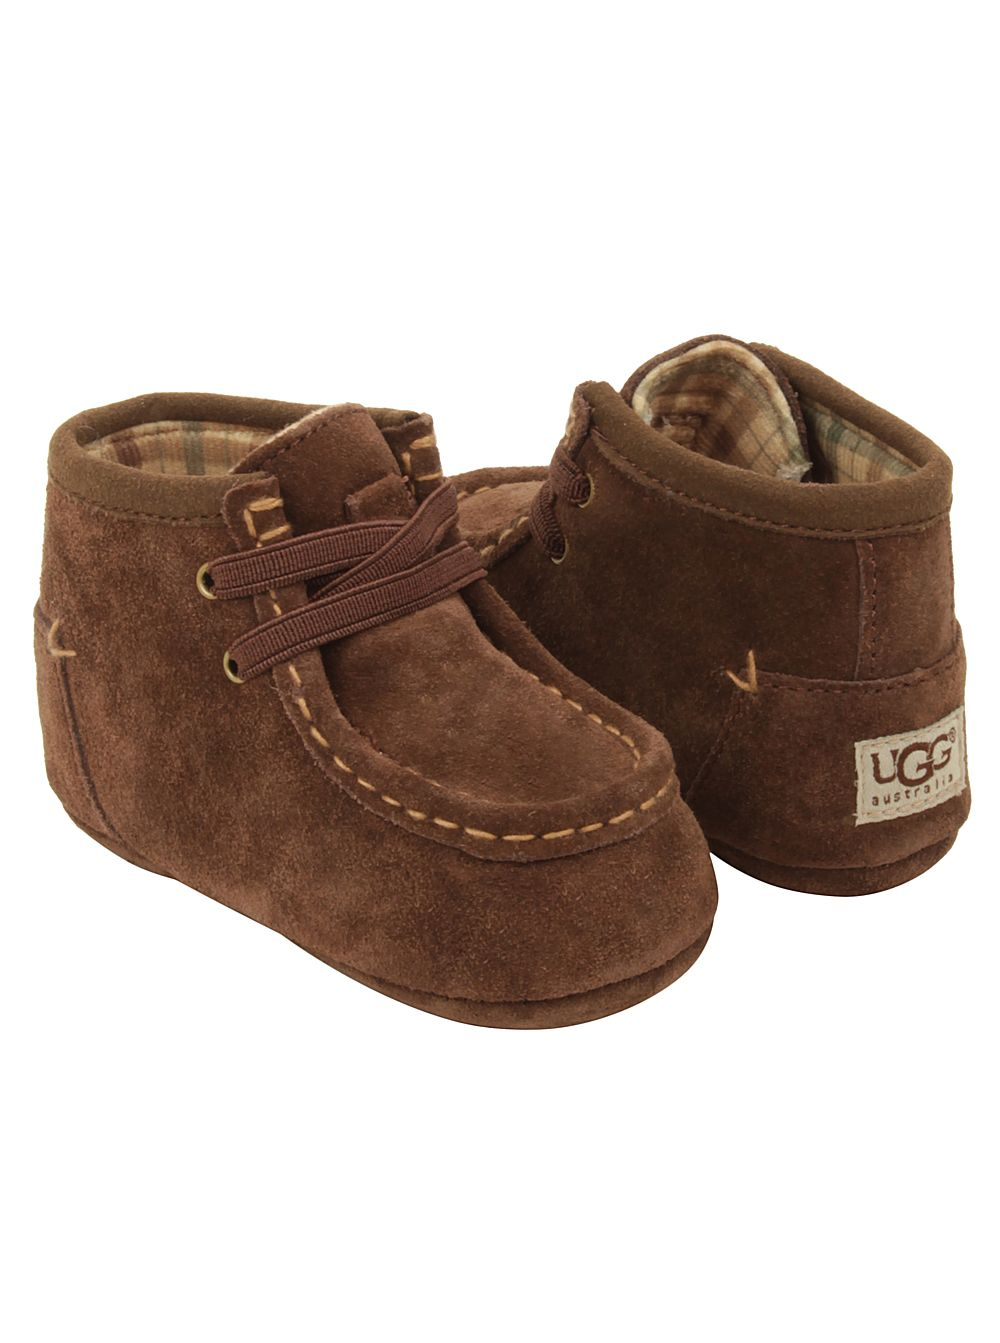 e03df888c8e boots$39 on | Baby boy shoes | Baby boots, Baby boy fashion, Uggs